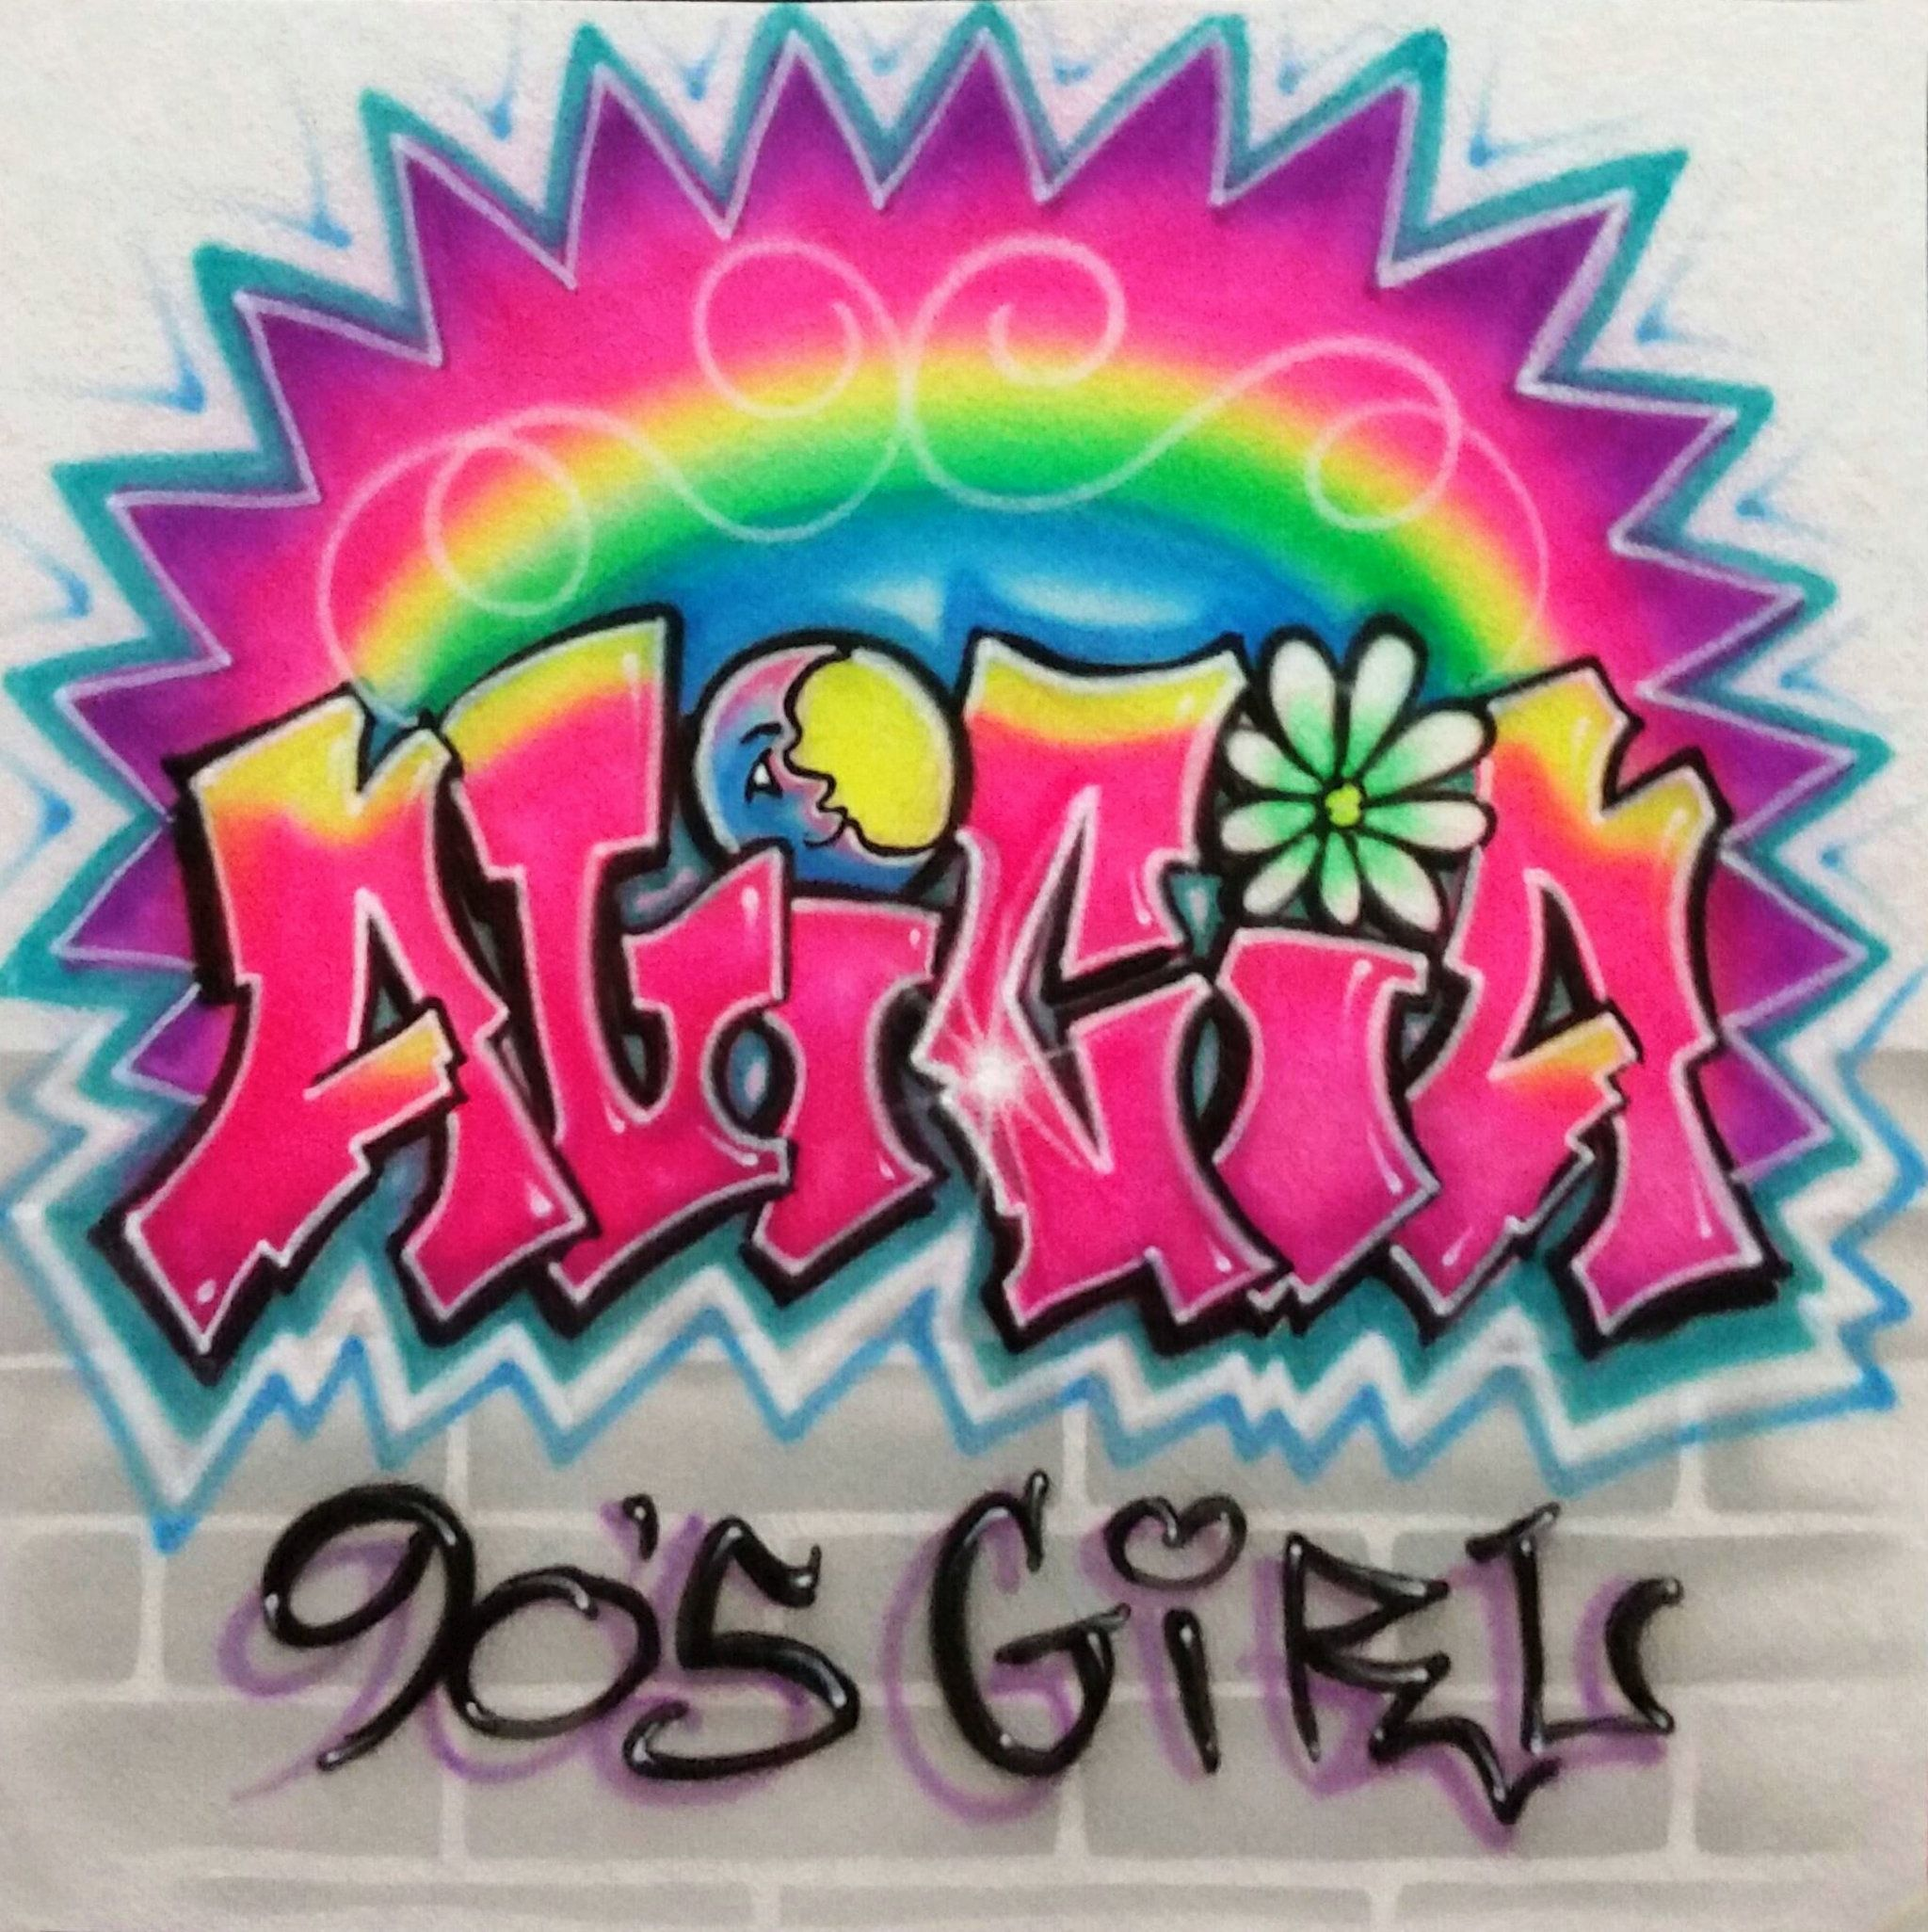 Excited to share the latest addition to my etsy shop airbrush graffiti name 90s